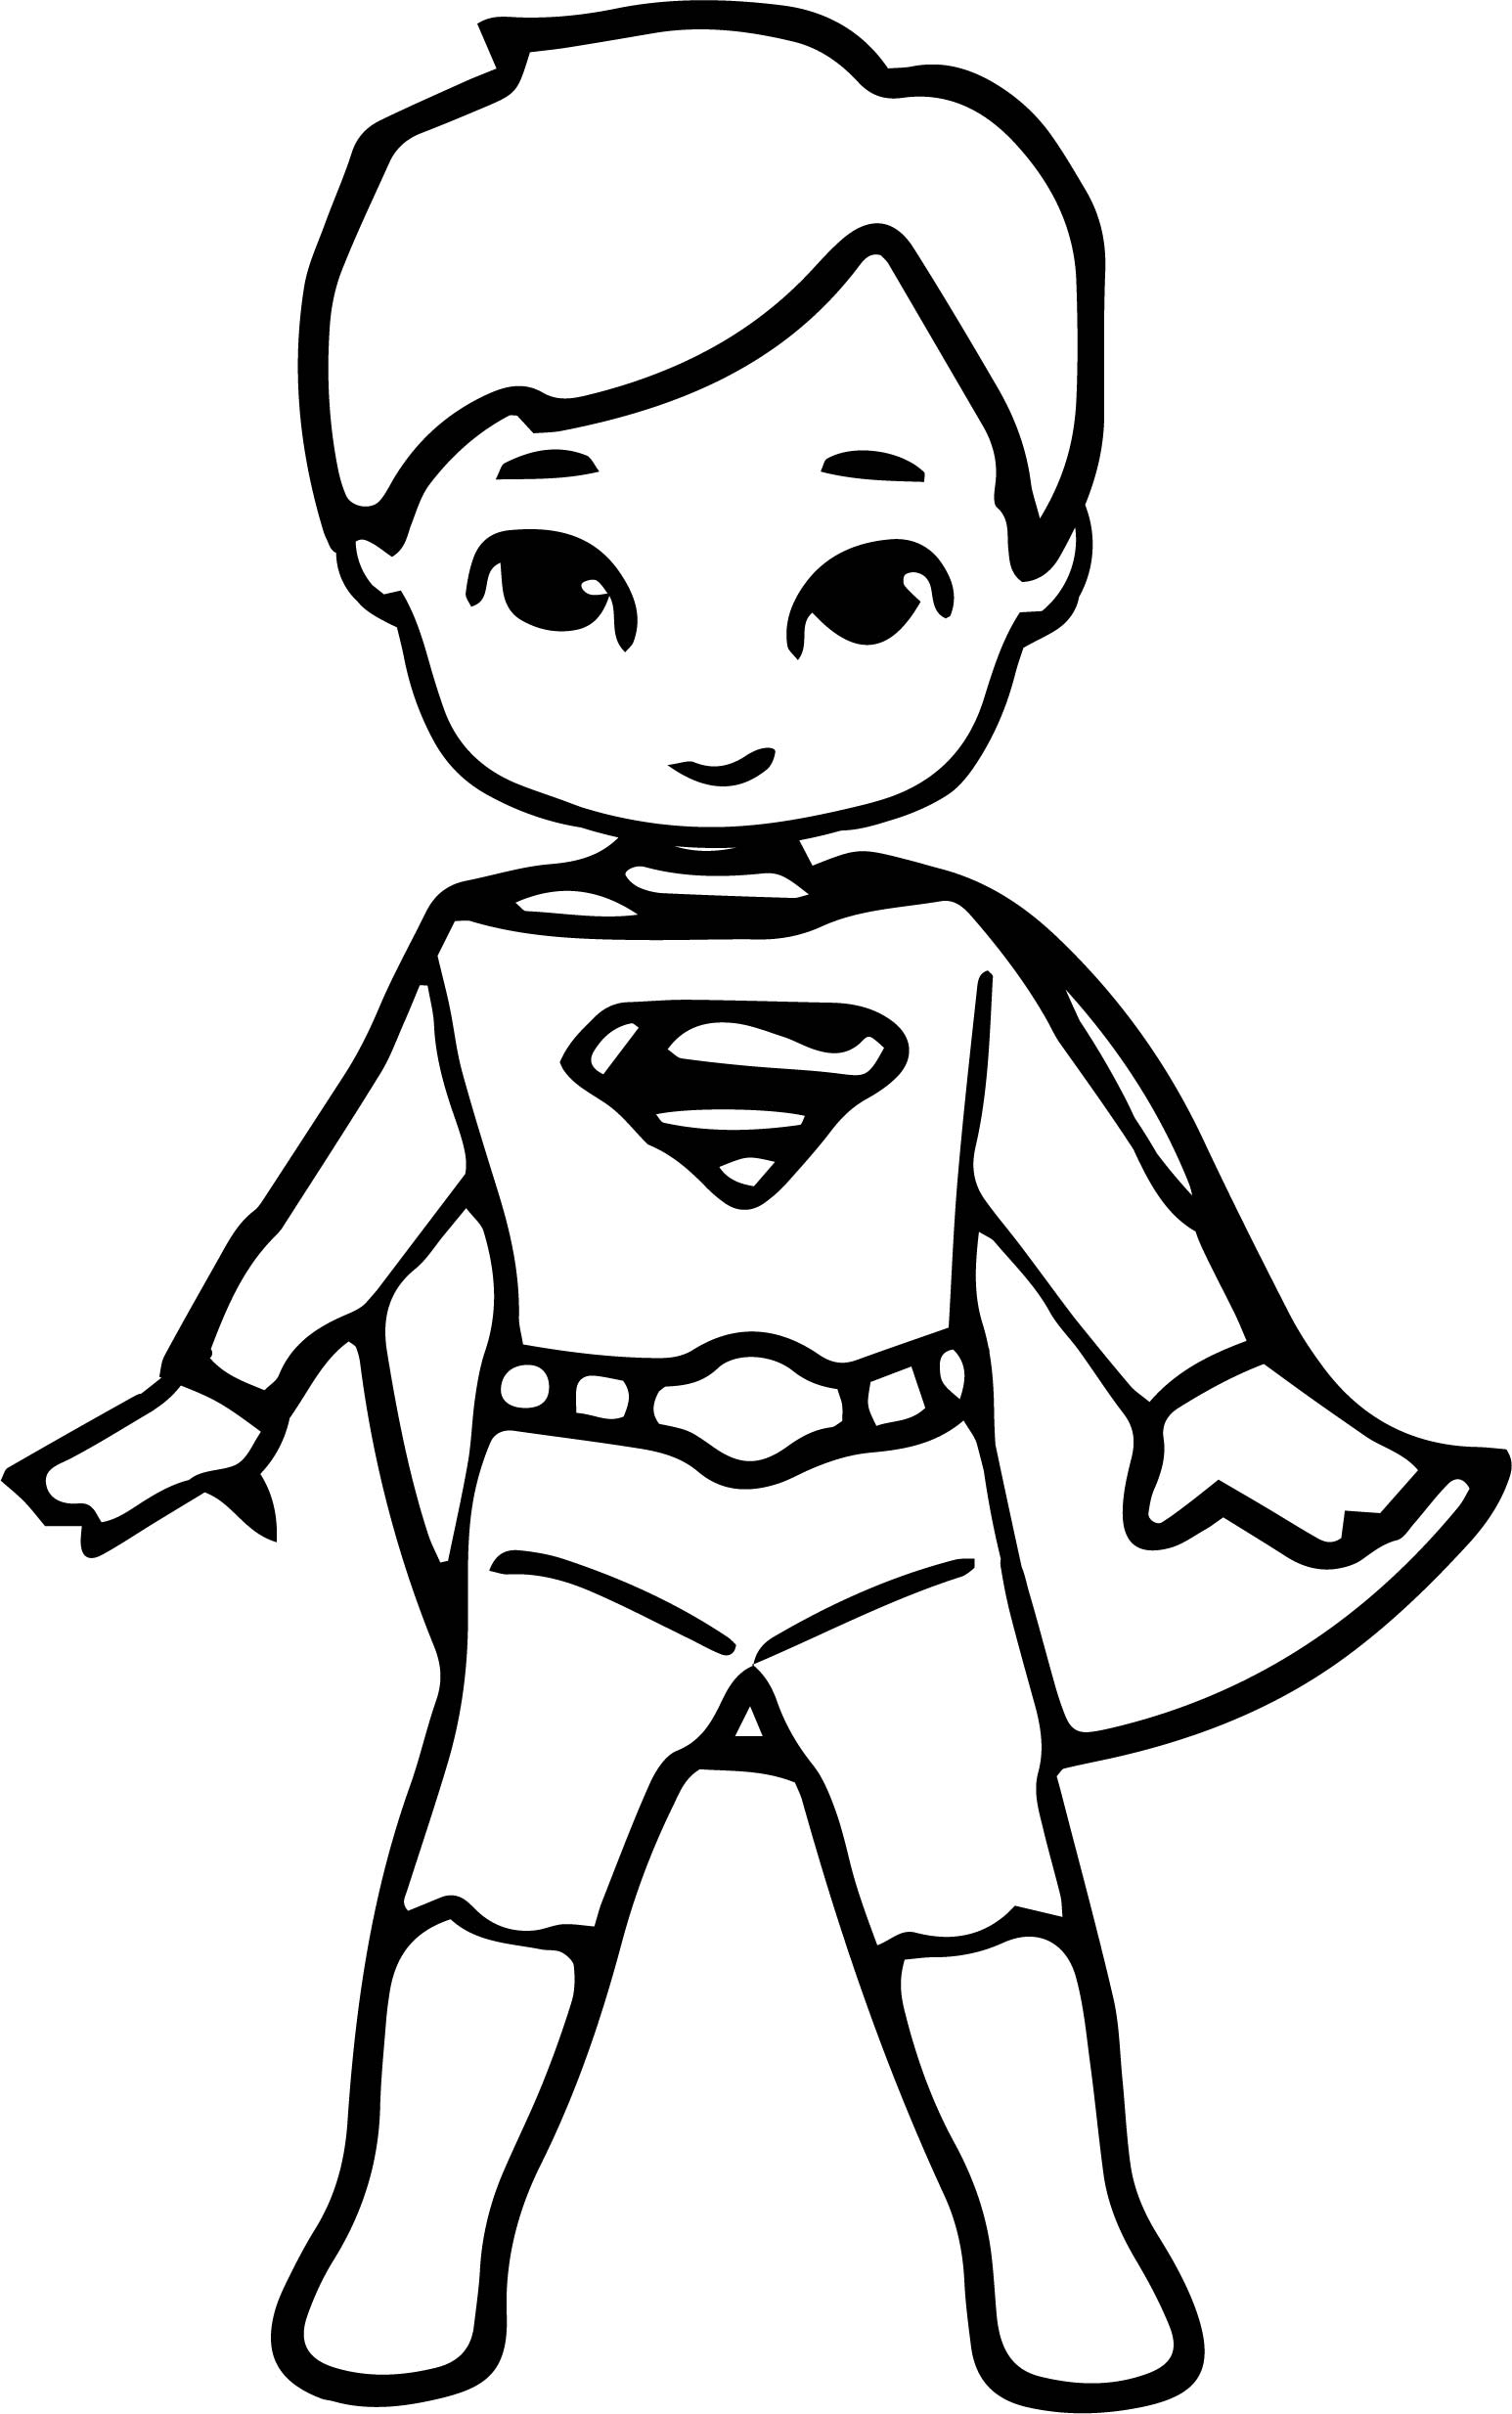 waiting cartoon superhero superman kid coloring page wecoloringpage